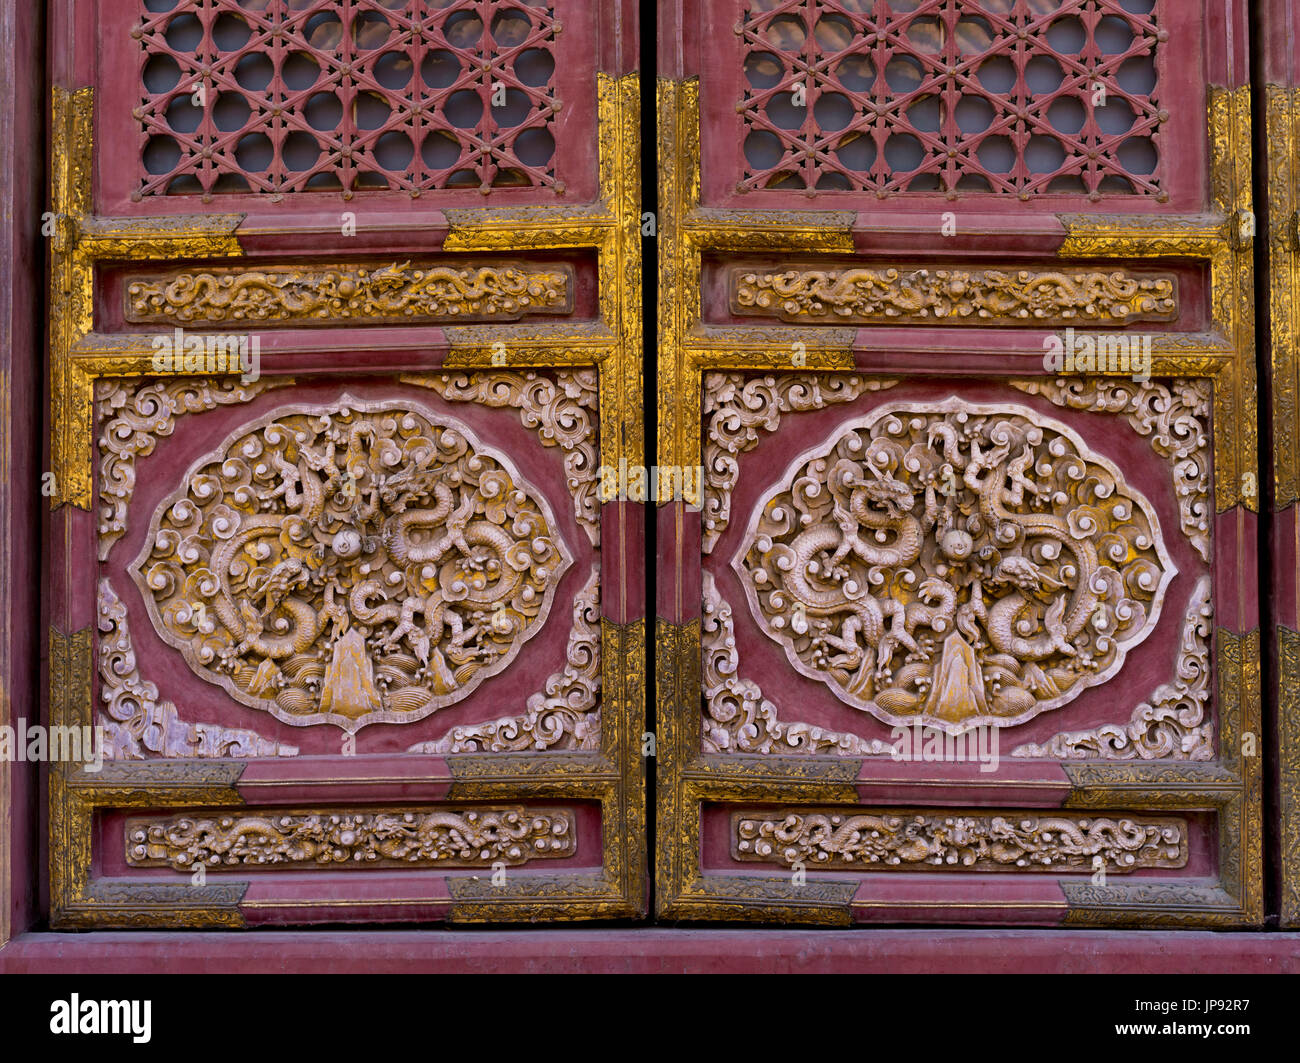 Doors at The Palace of Peace and Longevity, The Forbidden City, Beijing, China - Stock Image